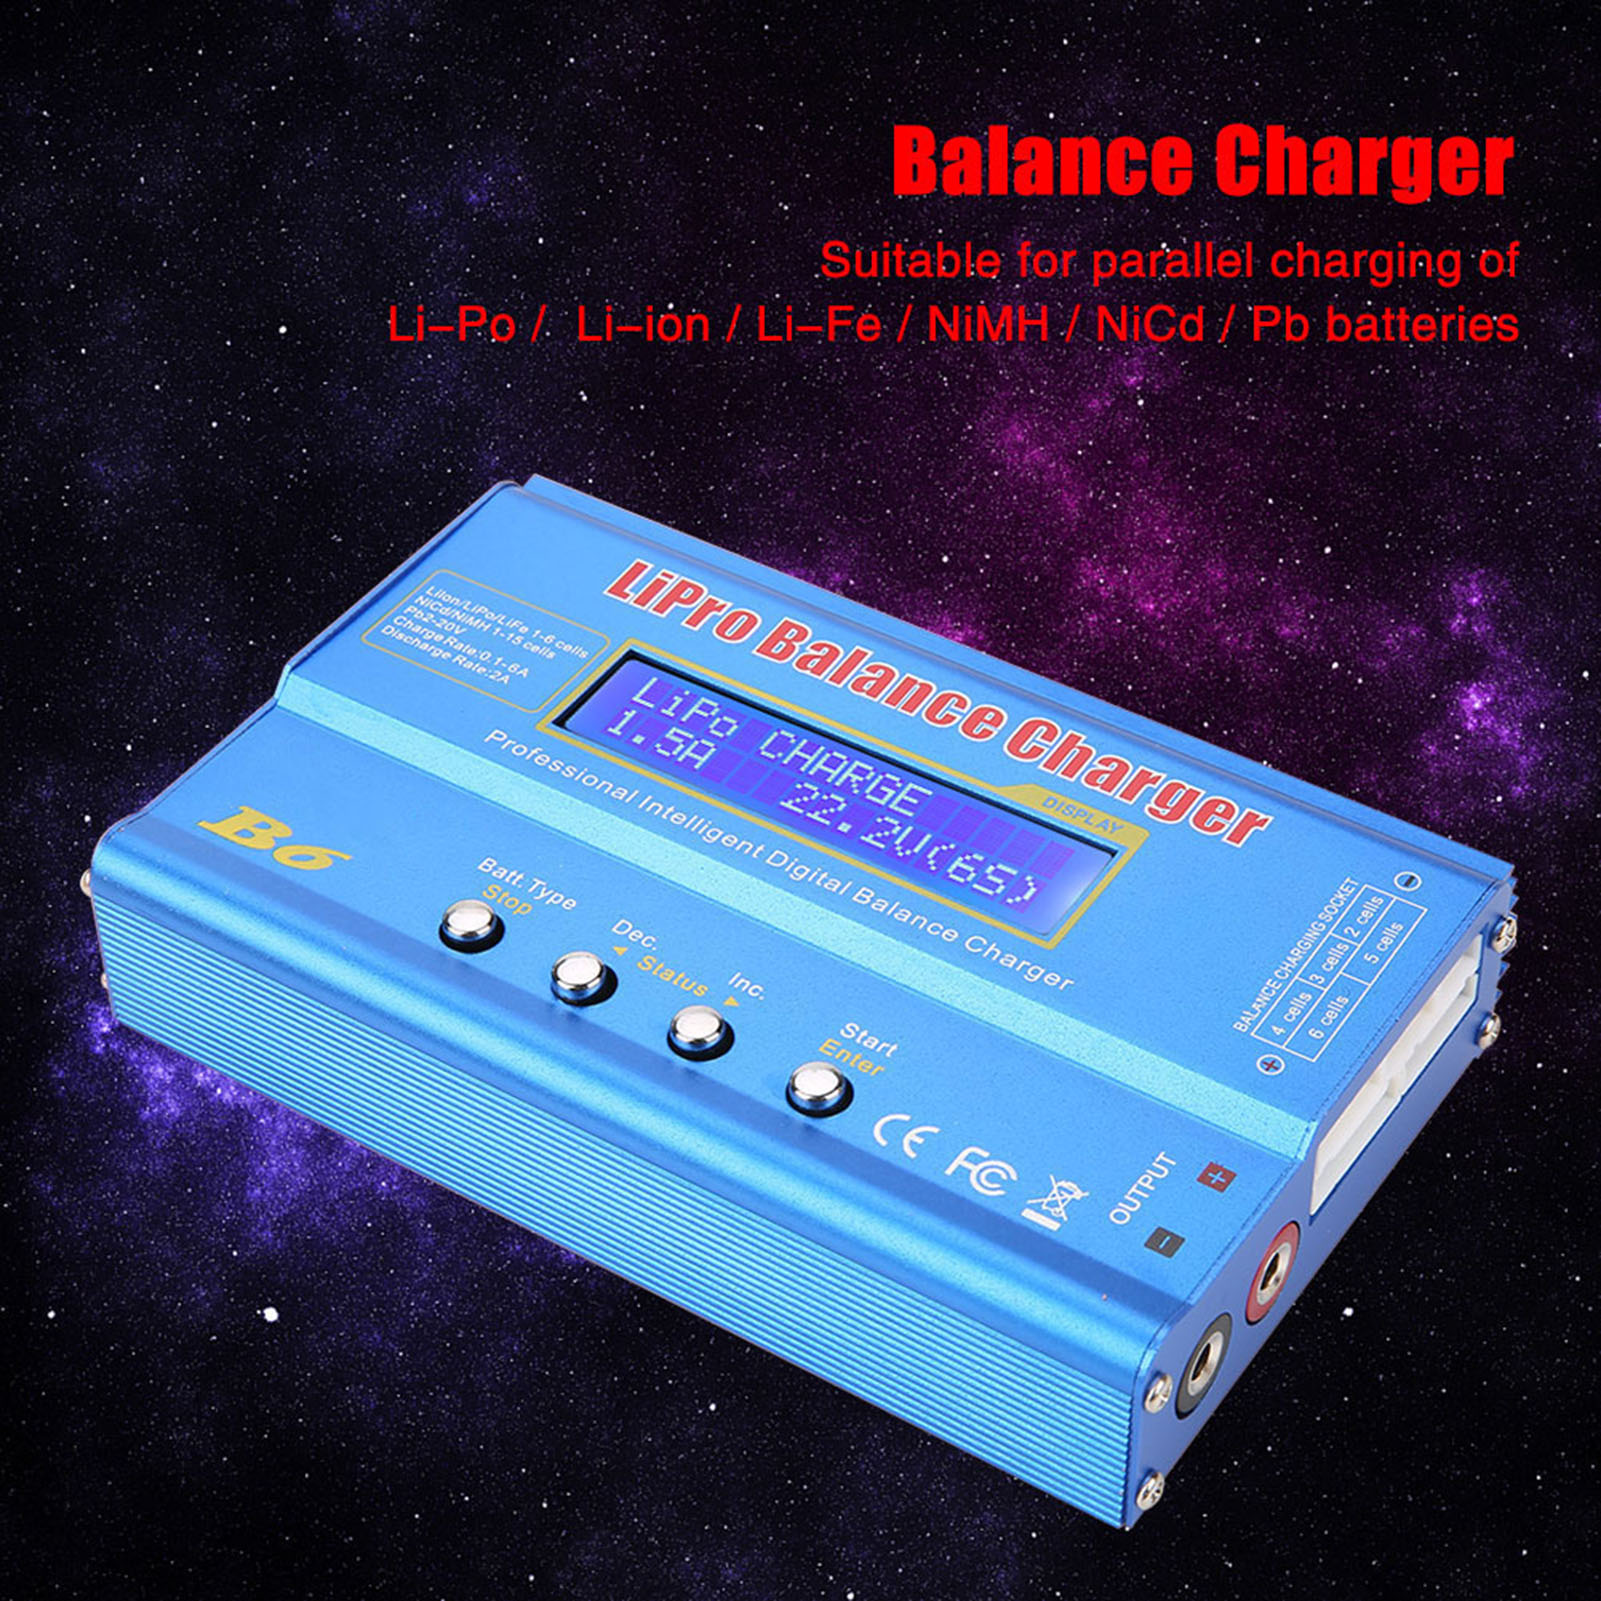 B6-80W-Digital-LCD-Balance-Charger-Discharger-for-Li-Po-Li-ion-NiMH-RC-Battery